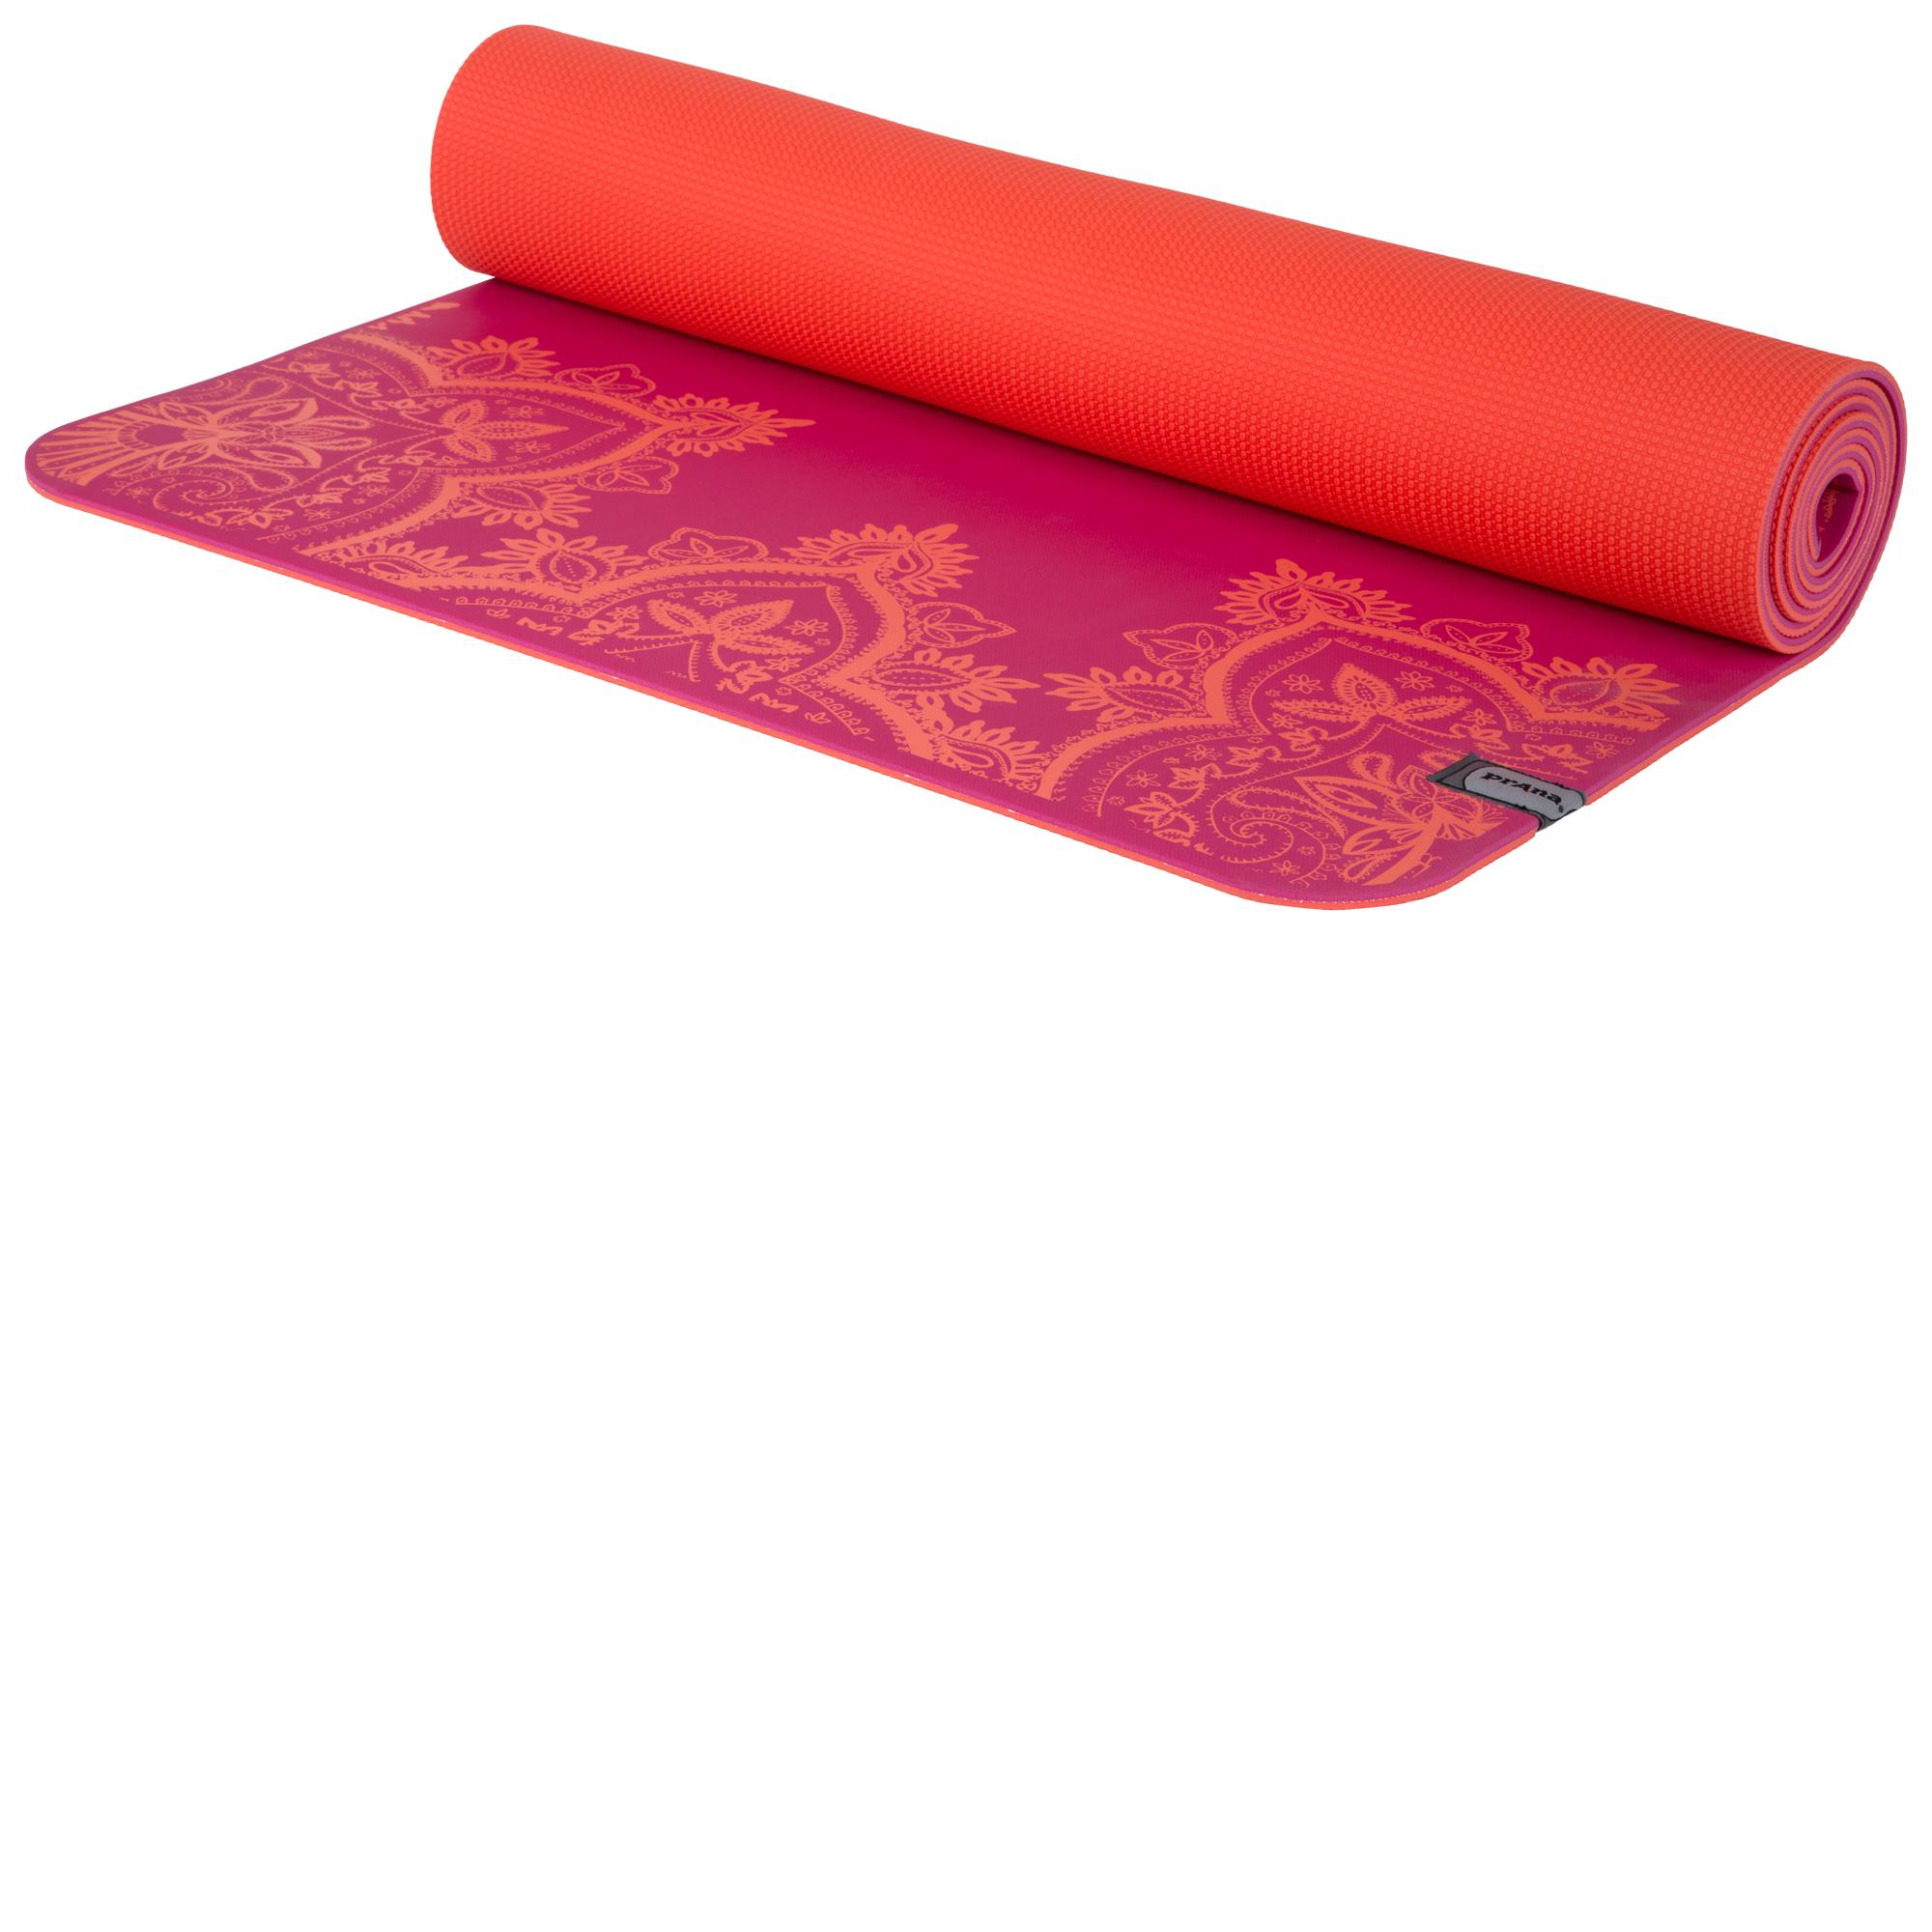 colors jade active seek the yoga towel mat brands uniq products wear mats